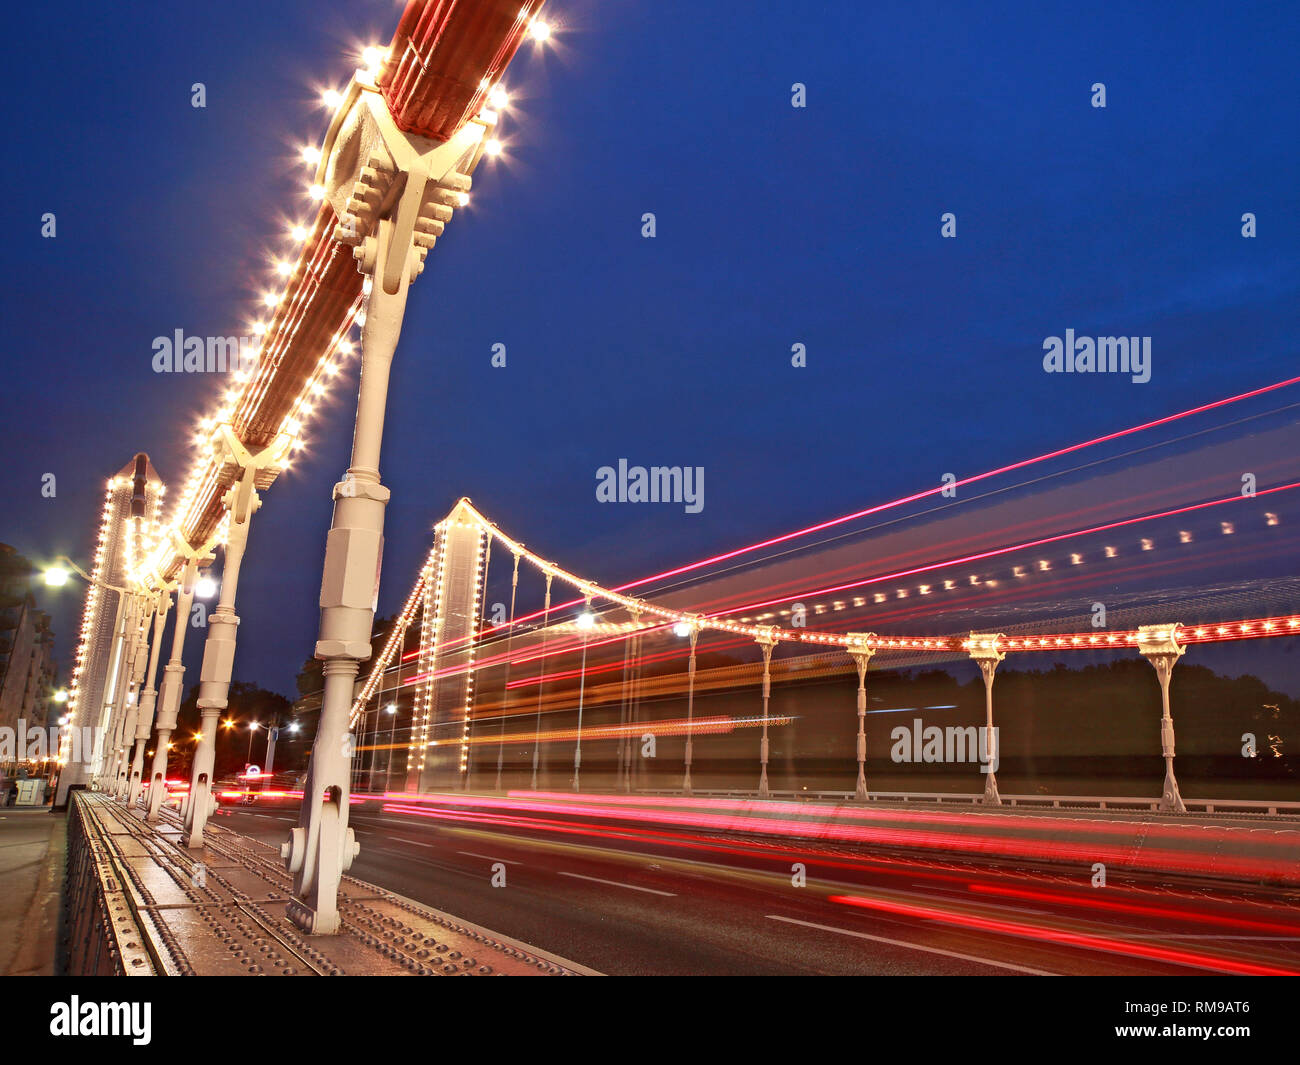 Dusk at Chelsea Bridge over the Thames, Chelsea Bridge Rd, London SW3 4SL - Stock Image